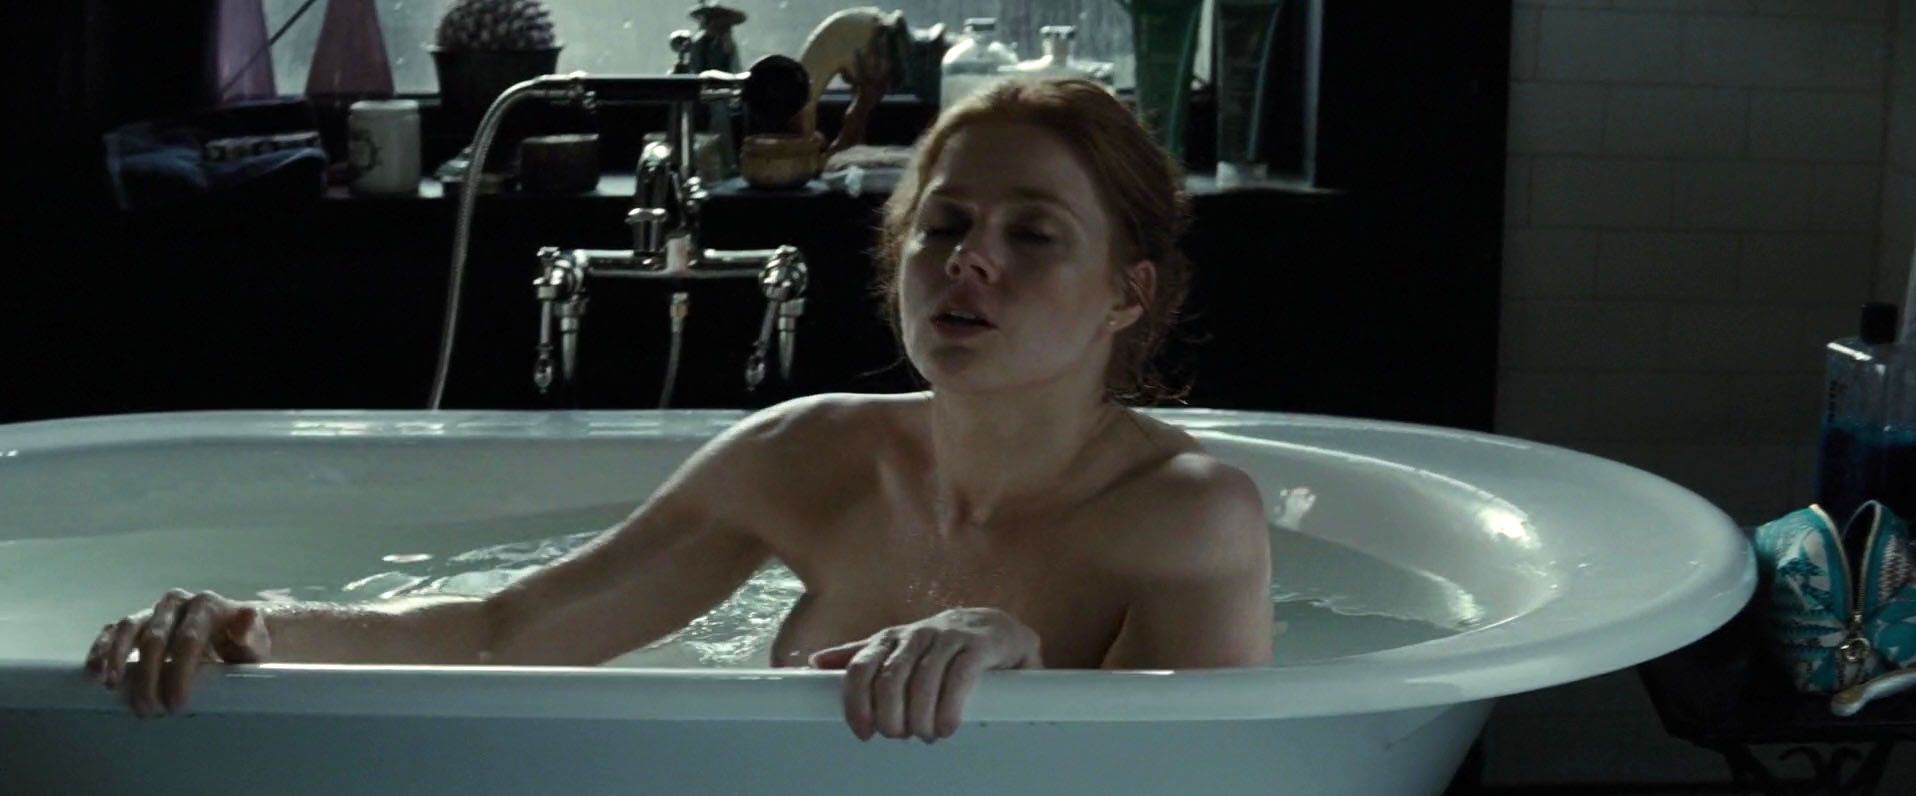 Amy Adams Nude Scene amy adams nude - uncensored videos & photos exposed!